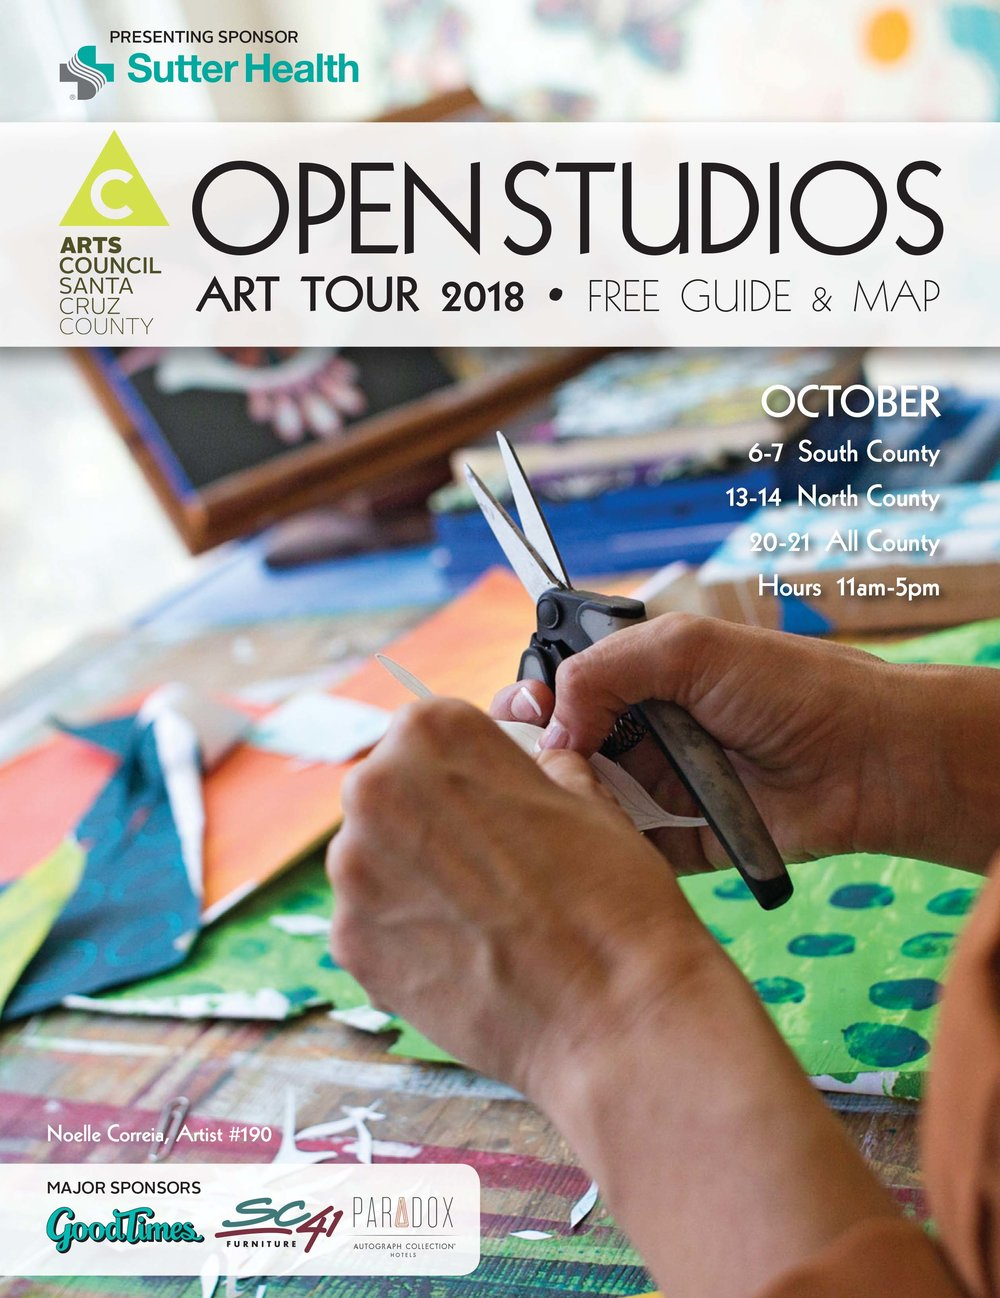 Artist Guides are now available! Find your FREE guide at one of the following locations while supplies last. Or view online here. -